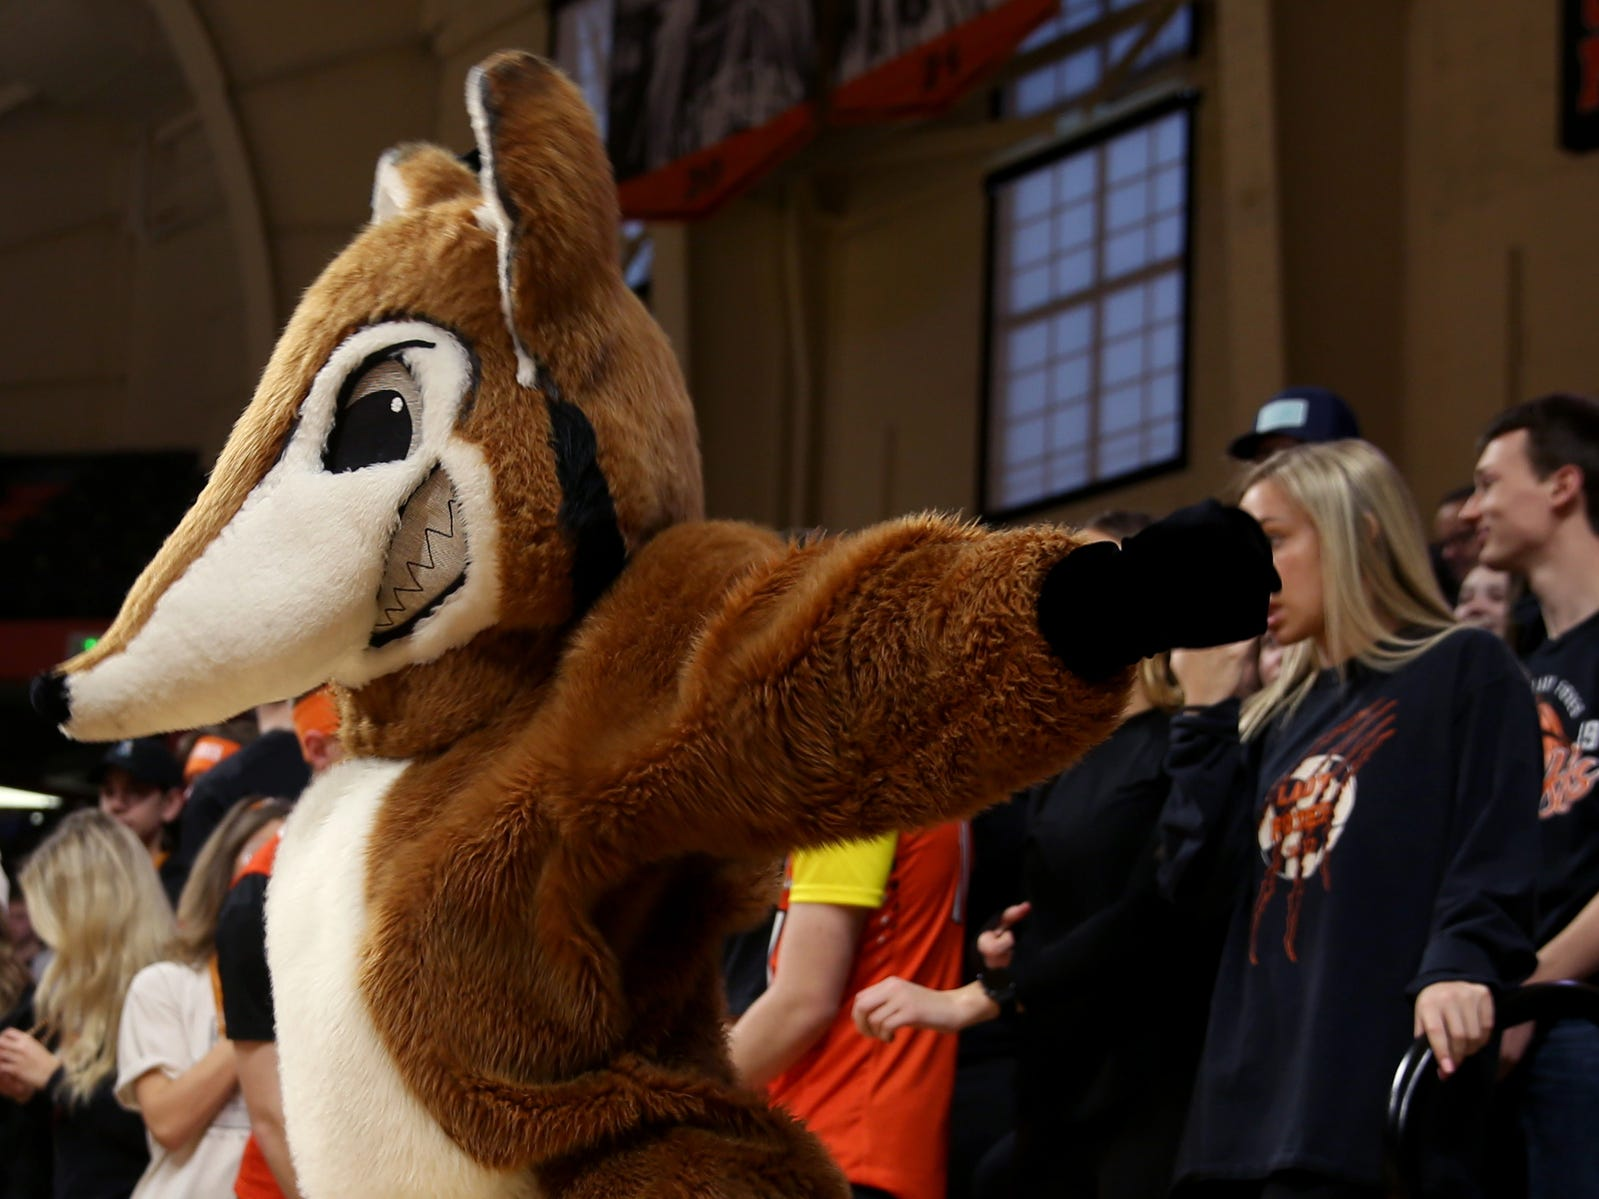 The Silverton Foxes mascot dances during the second half of the La Salle Prep vs. Silverton girls basketball game in the OSAA Class 5A quarterfinals at Oregon State University in Corvallis on Thursday, March 7, 2019. La Salle Prep won the game 57-46.